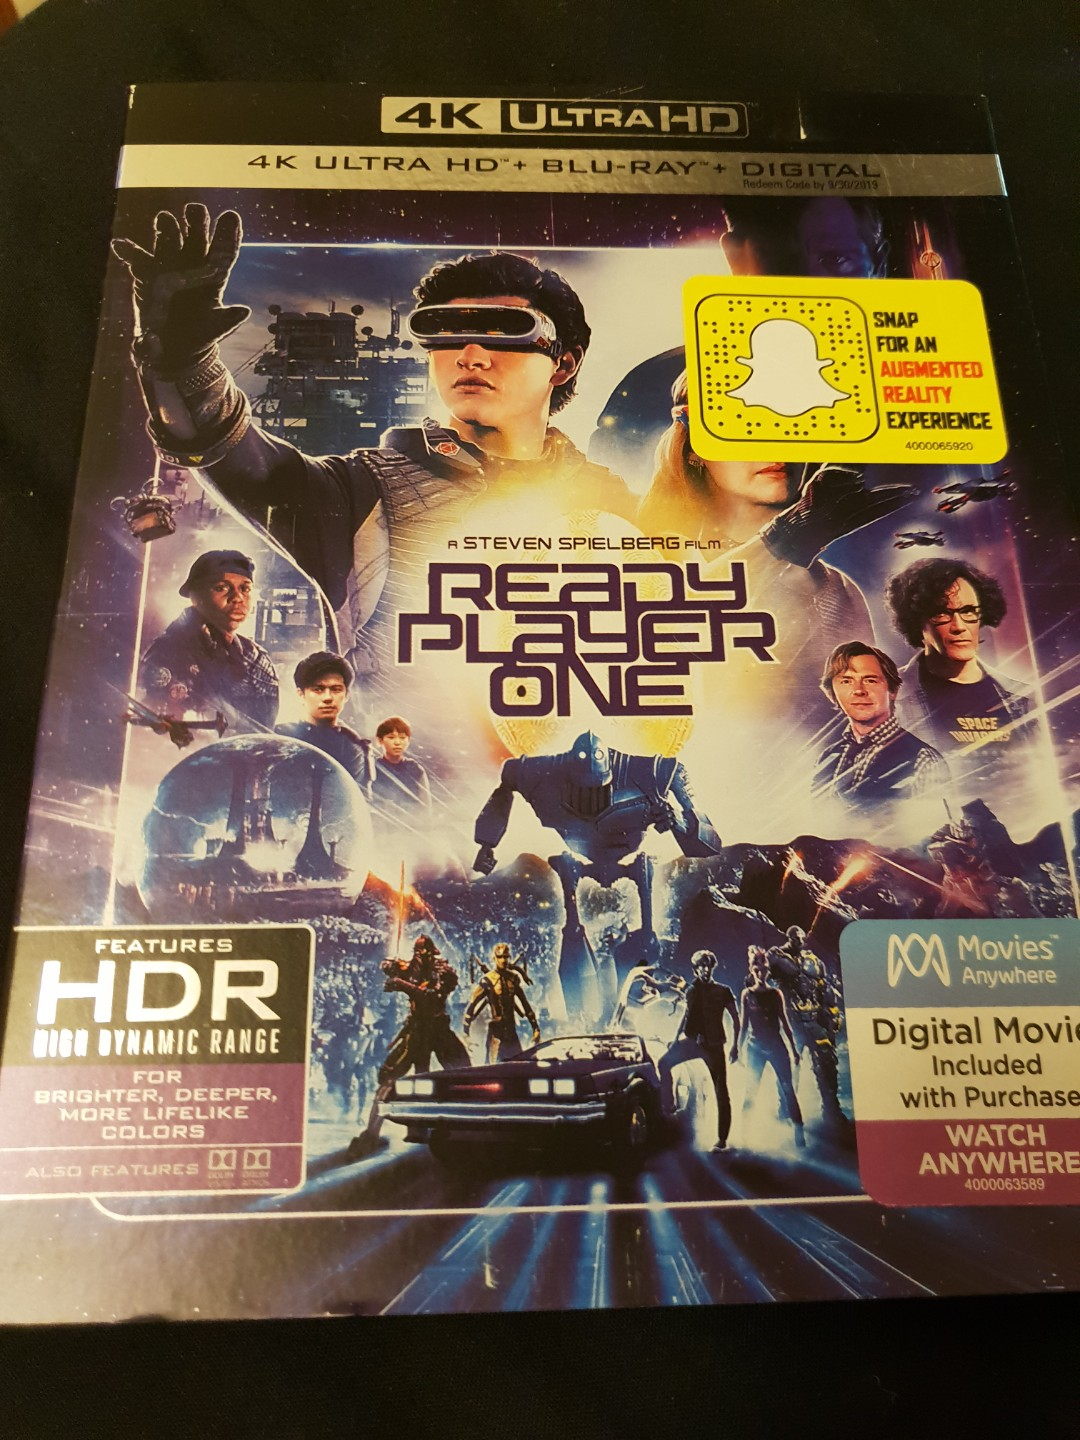 Ready player one 4k UHD and blu-ray movie